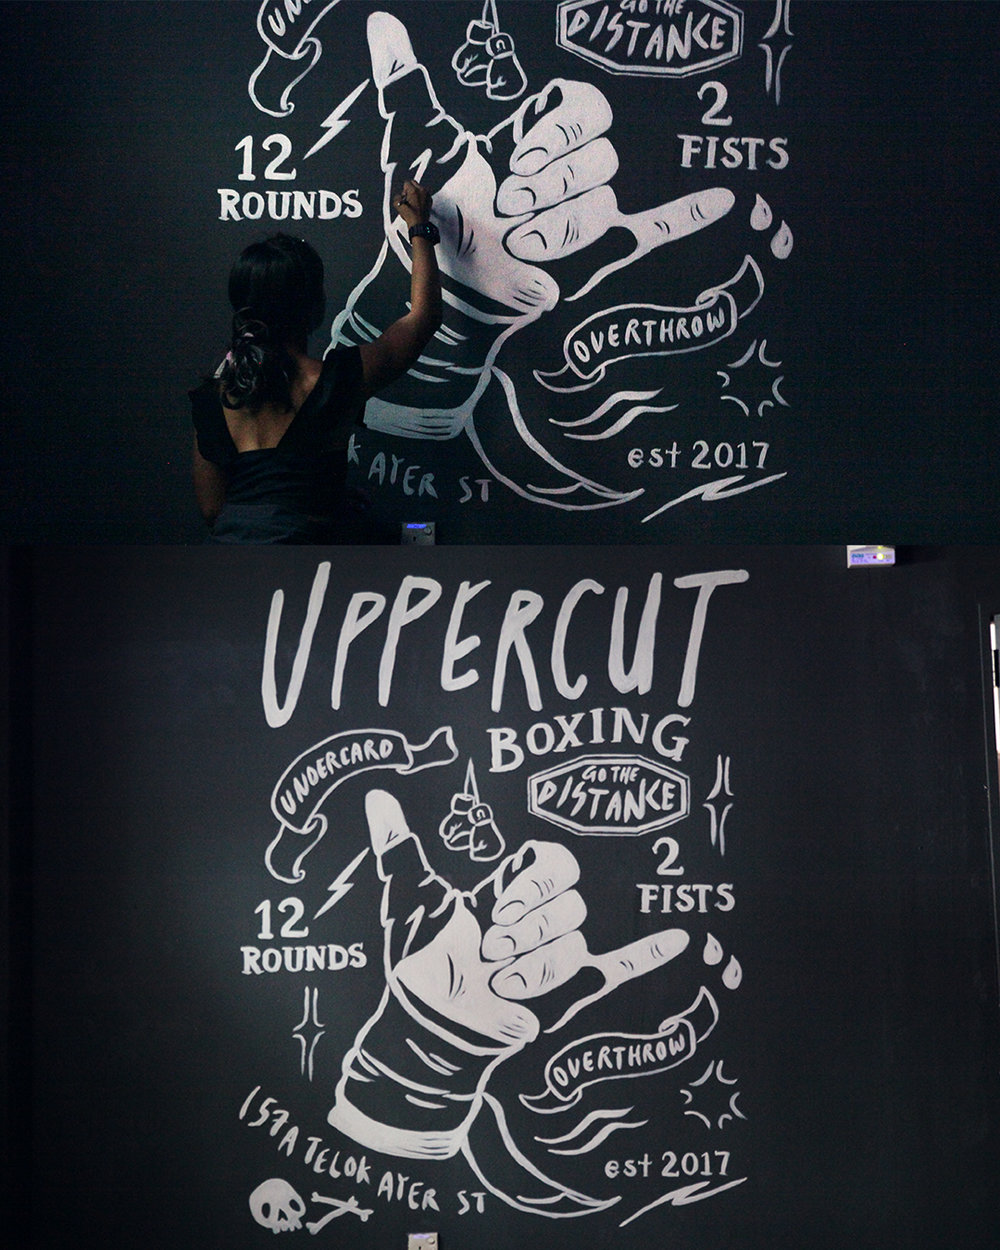 For Uppercut Boxing